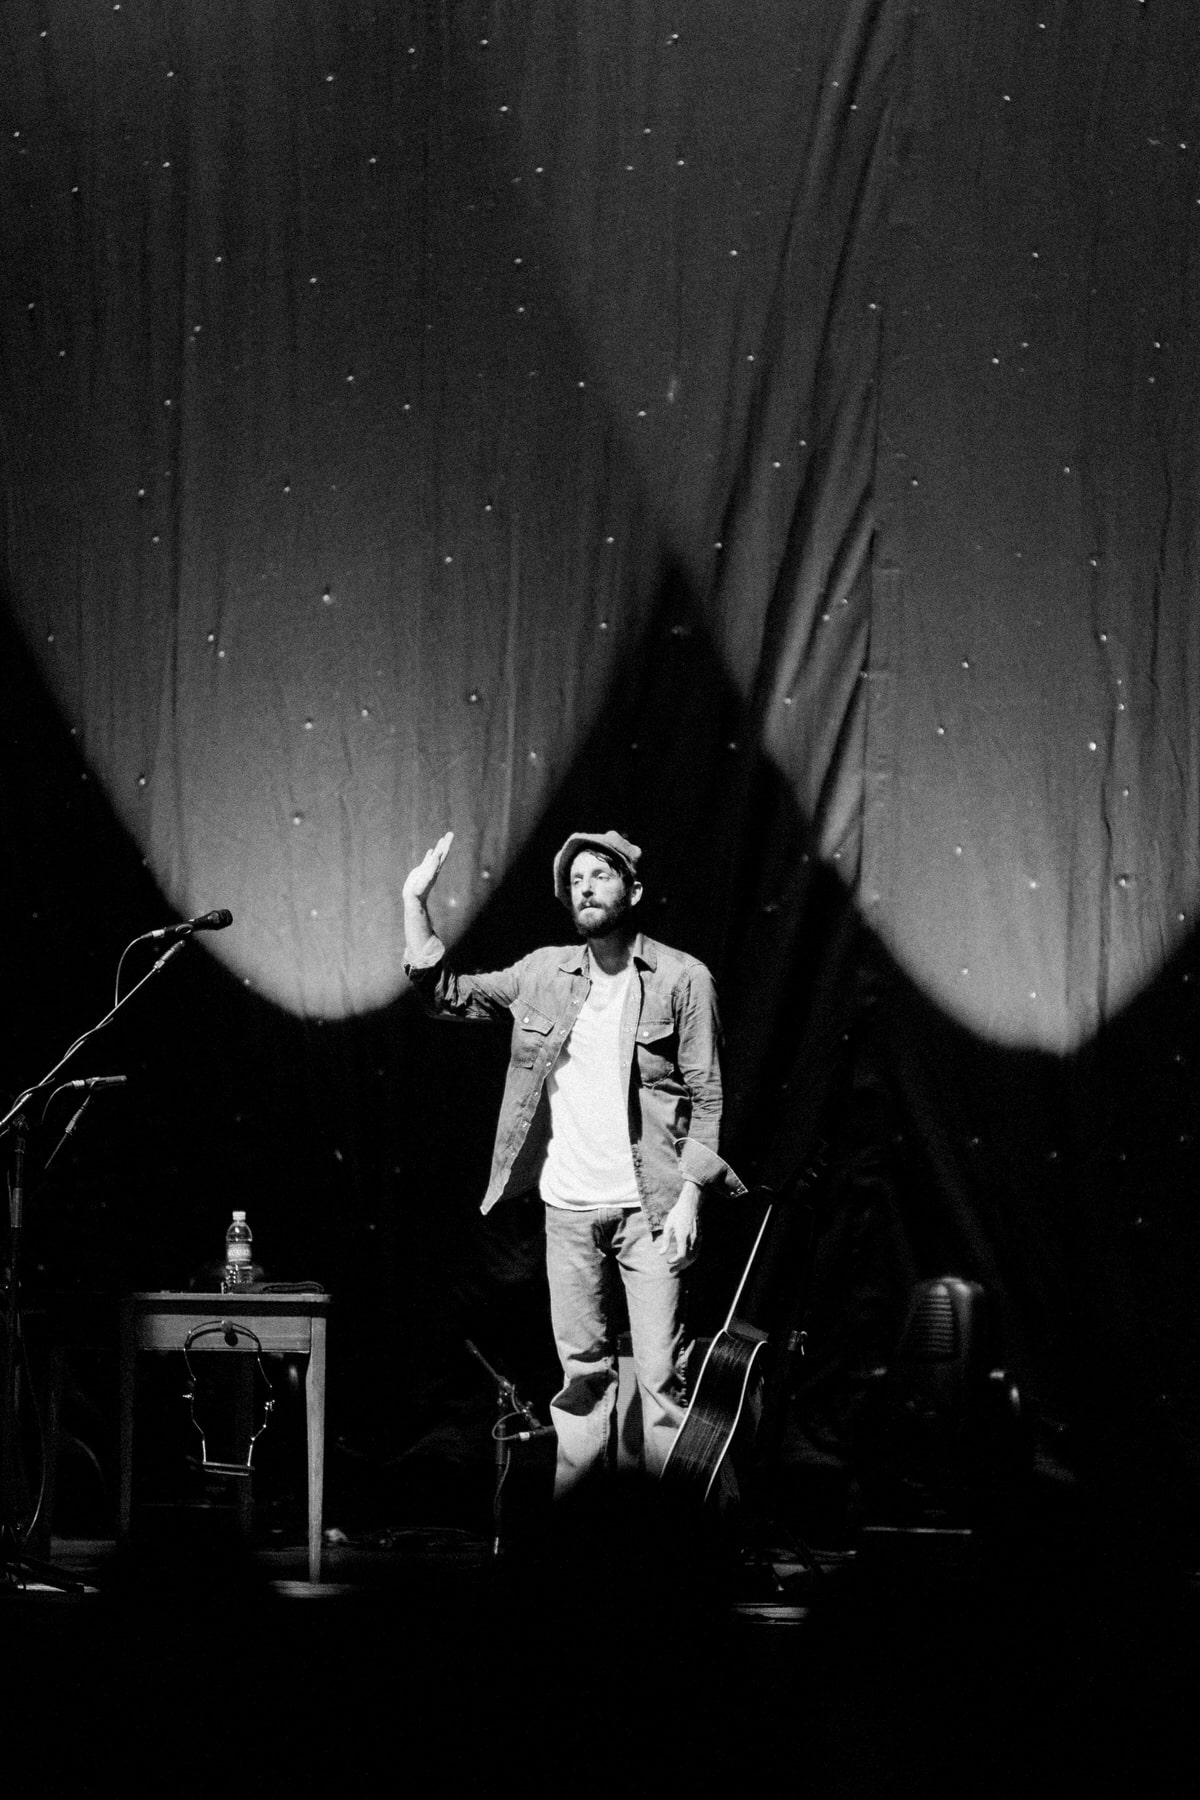 David-Gray-Ray-LaMontagne-concert-Jay-Pritzker-Paviilion-Chicago-Illinois-black-and-white-fine-art-photography-by-Studio-L-photographer-Laura-Schneider-_3612